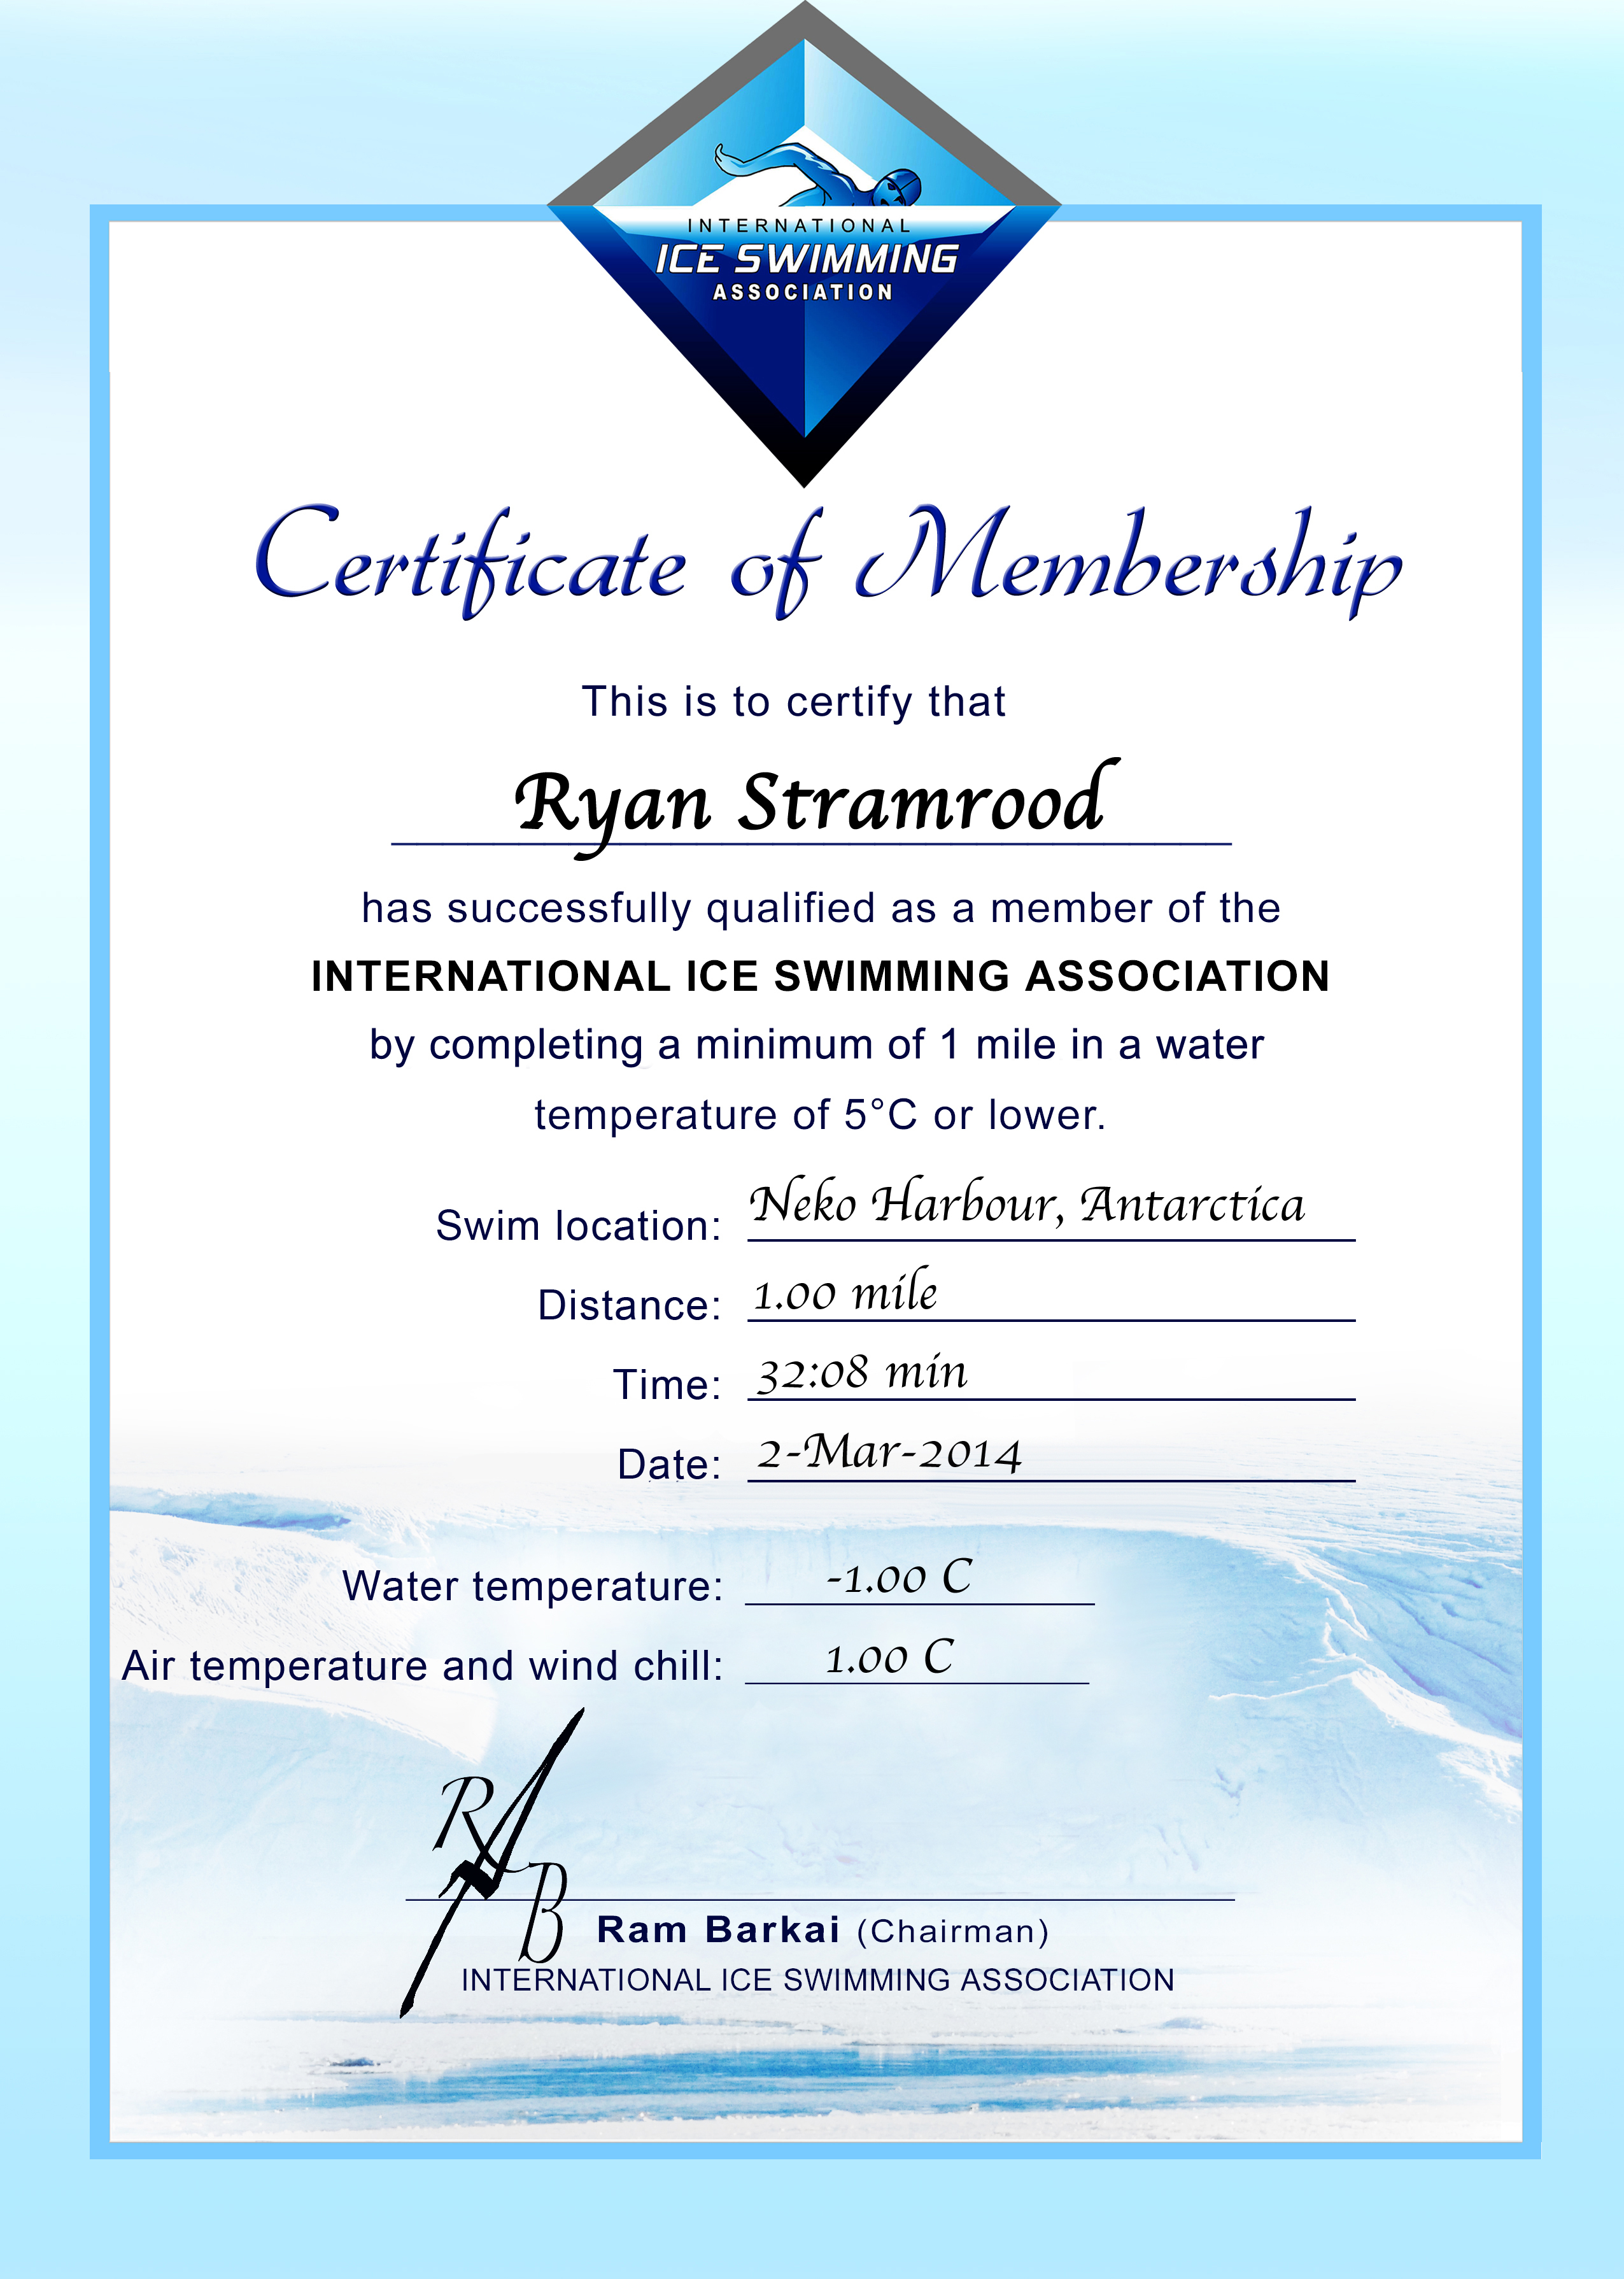 Ice Mile Certificate - Ryan Stramrood